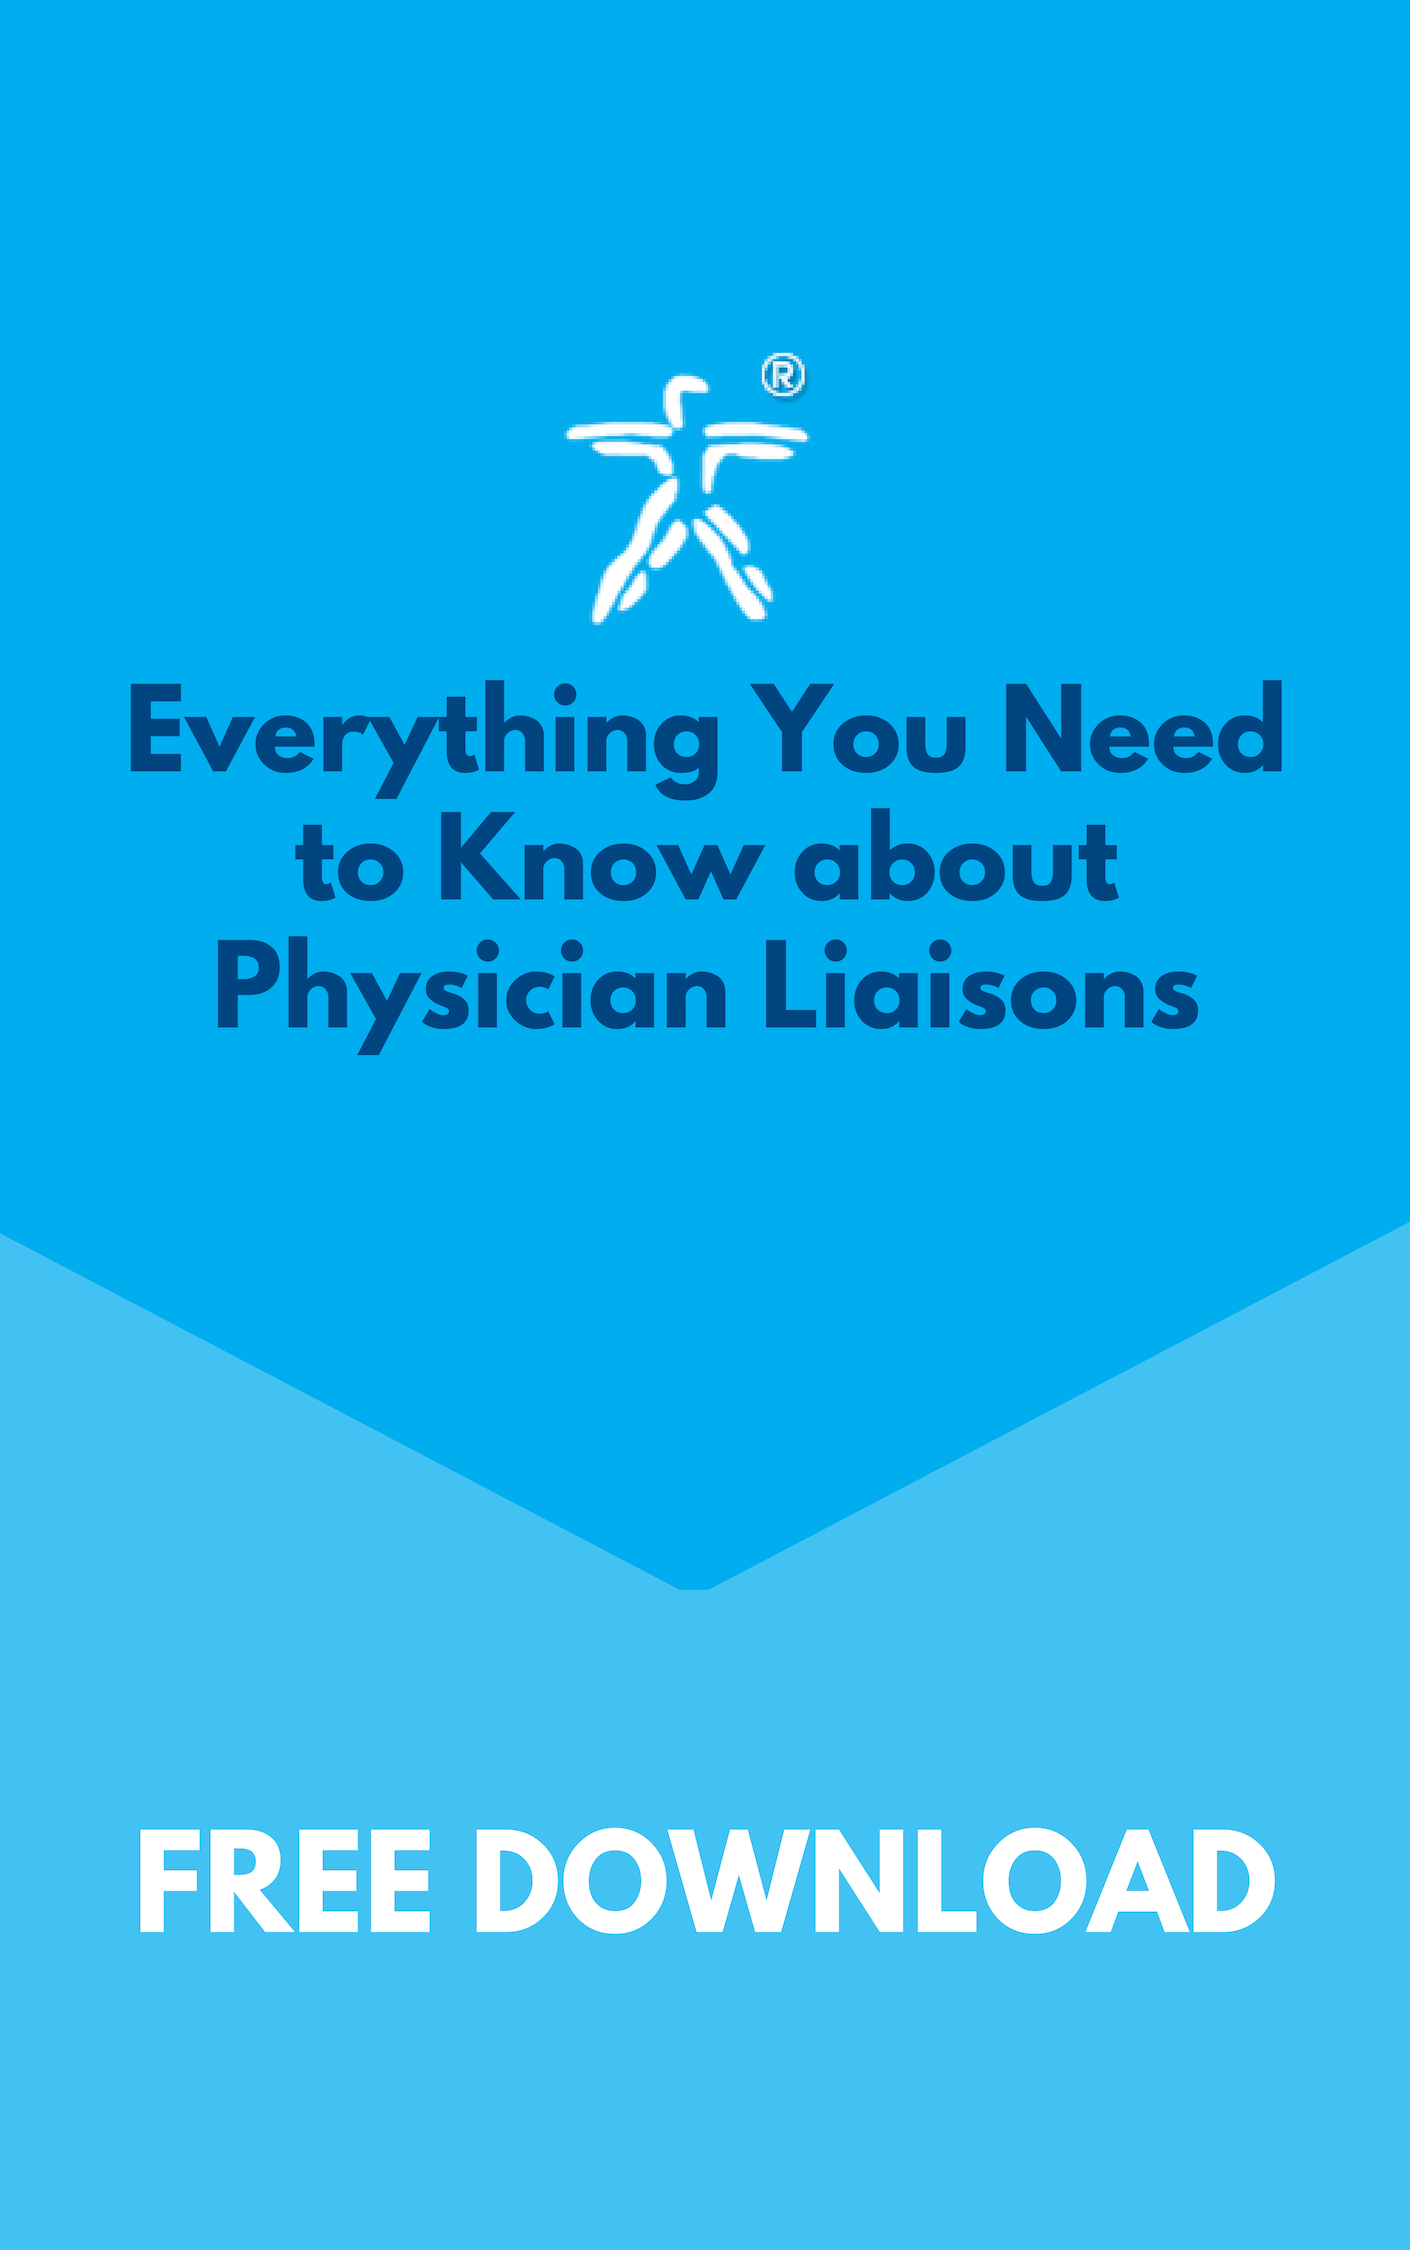 Everything You Need to Know about Physician Liaisons